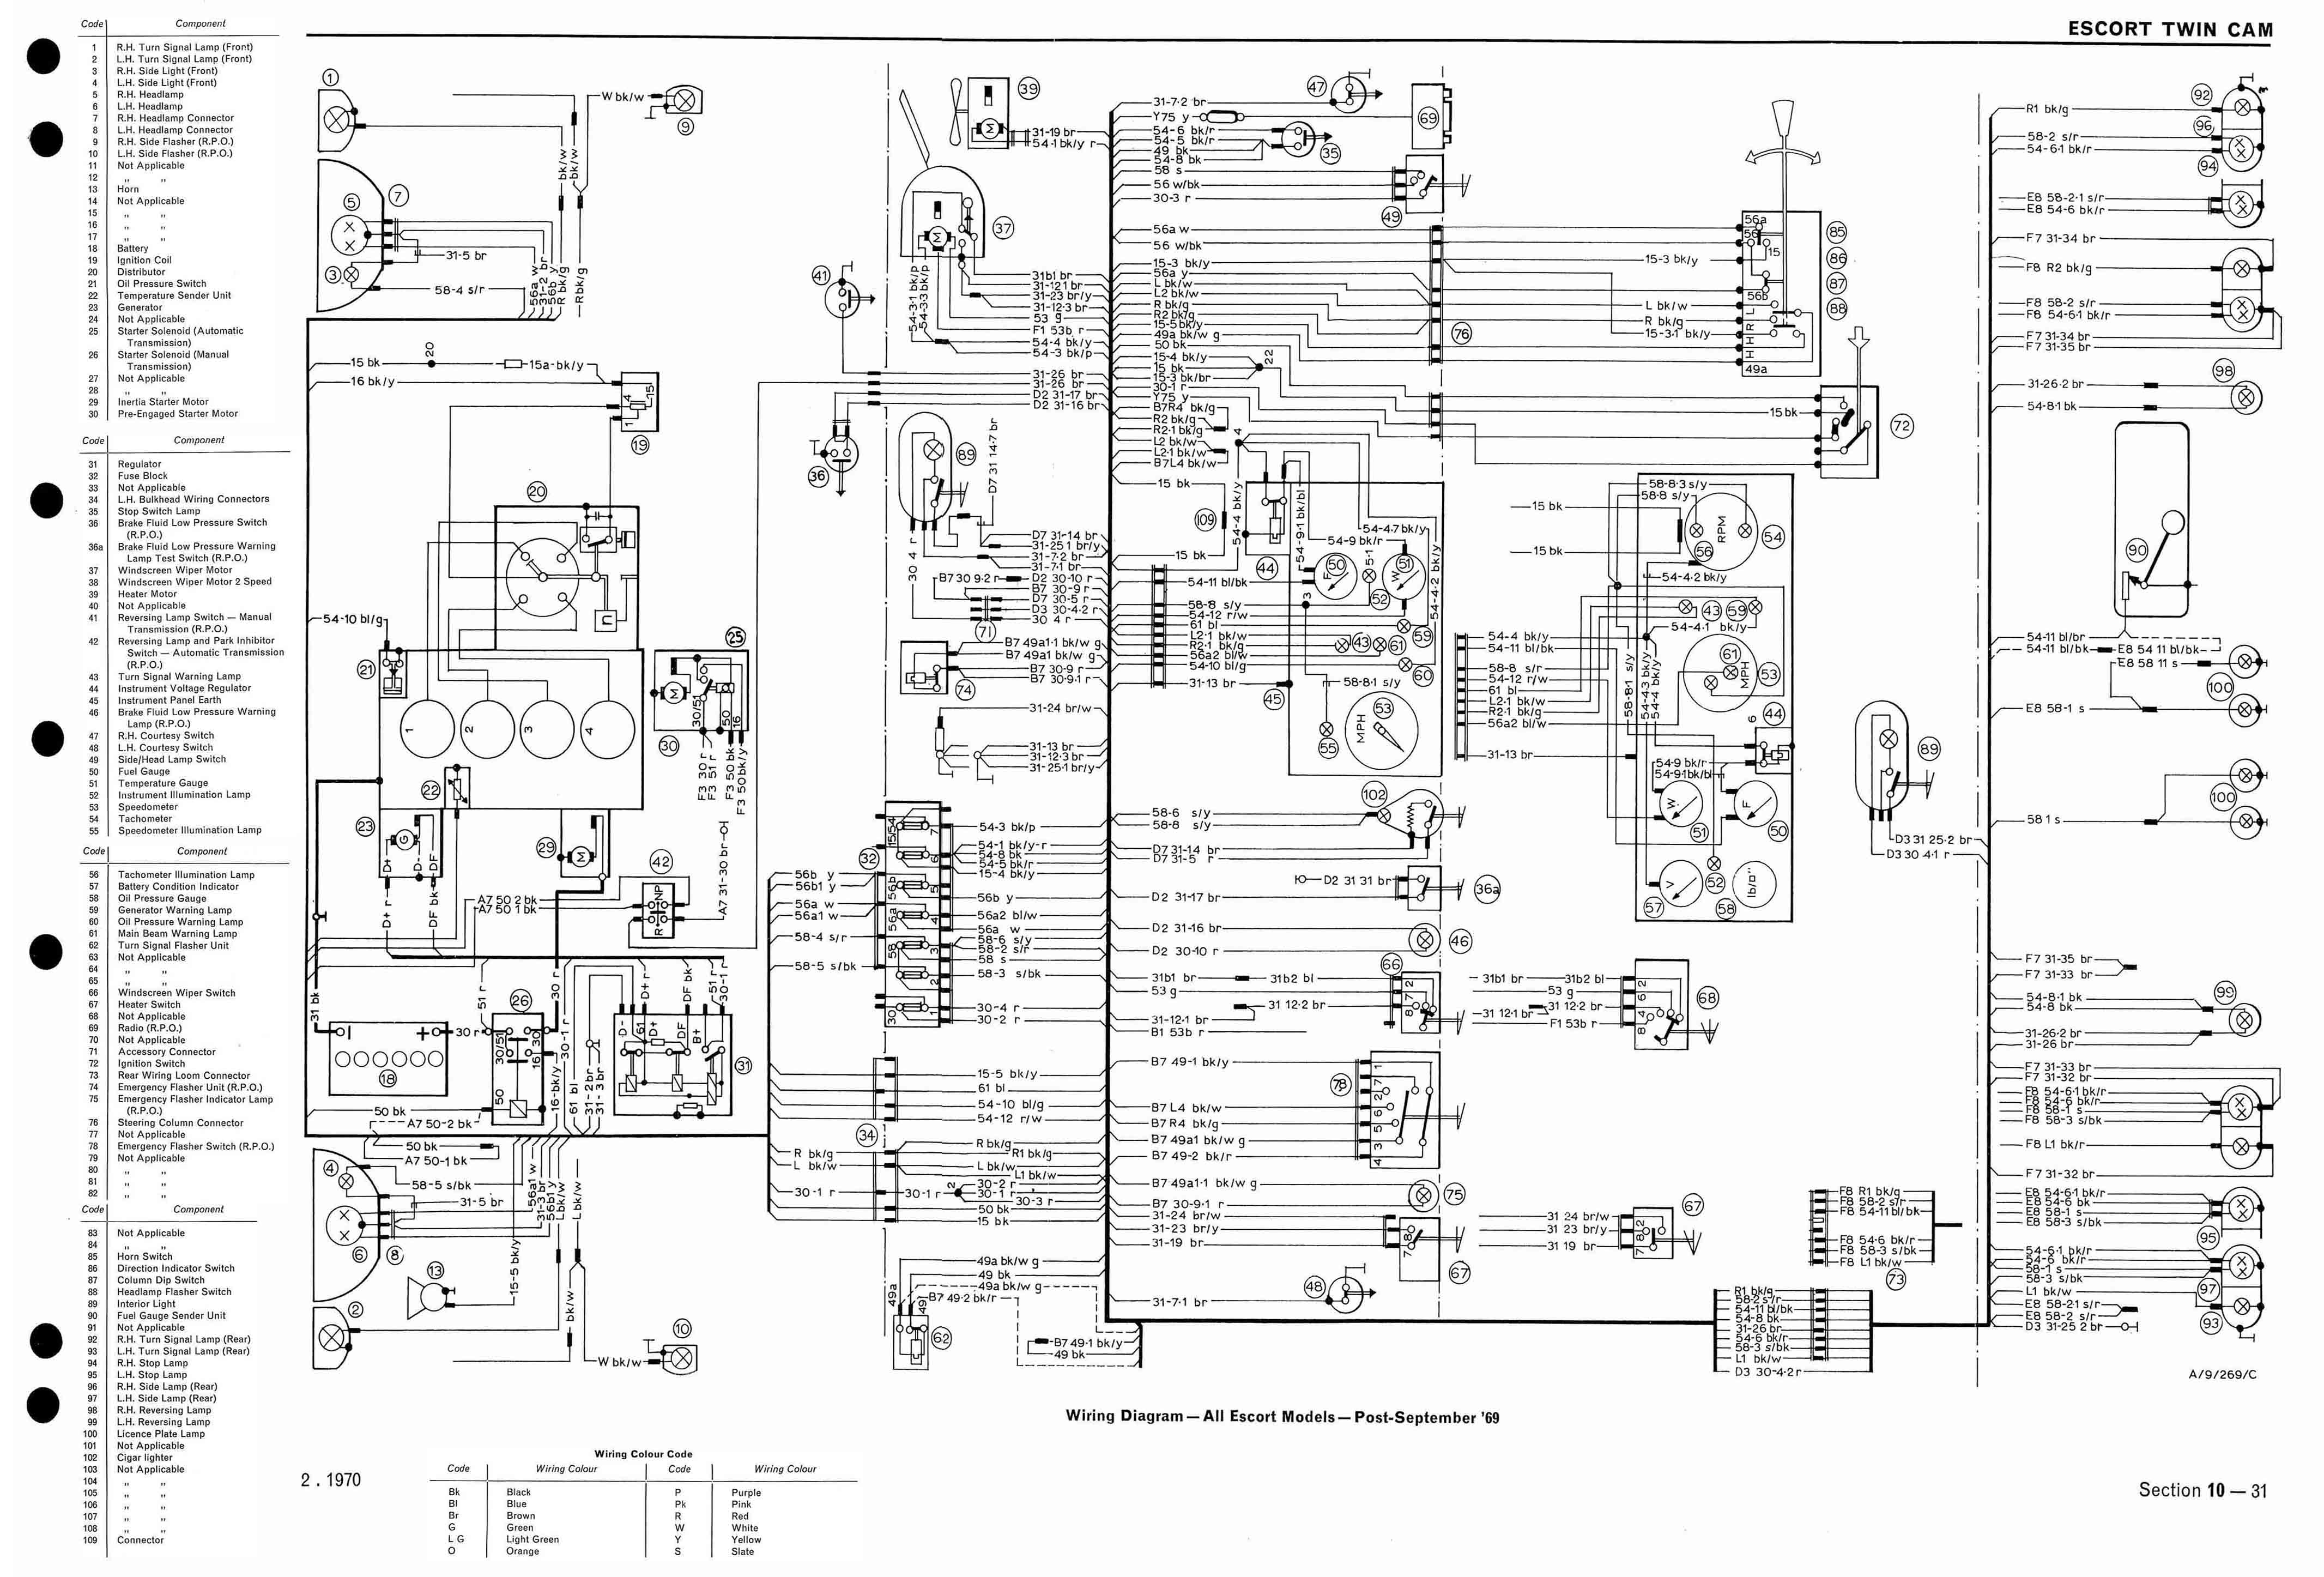 Diagram: Wiring diagram for MK1 Escort needed